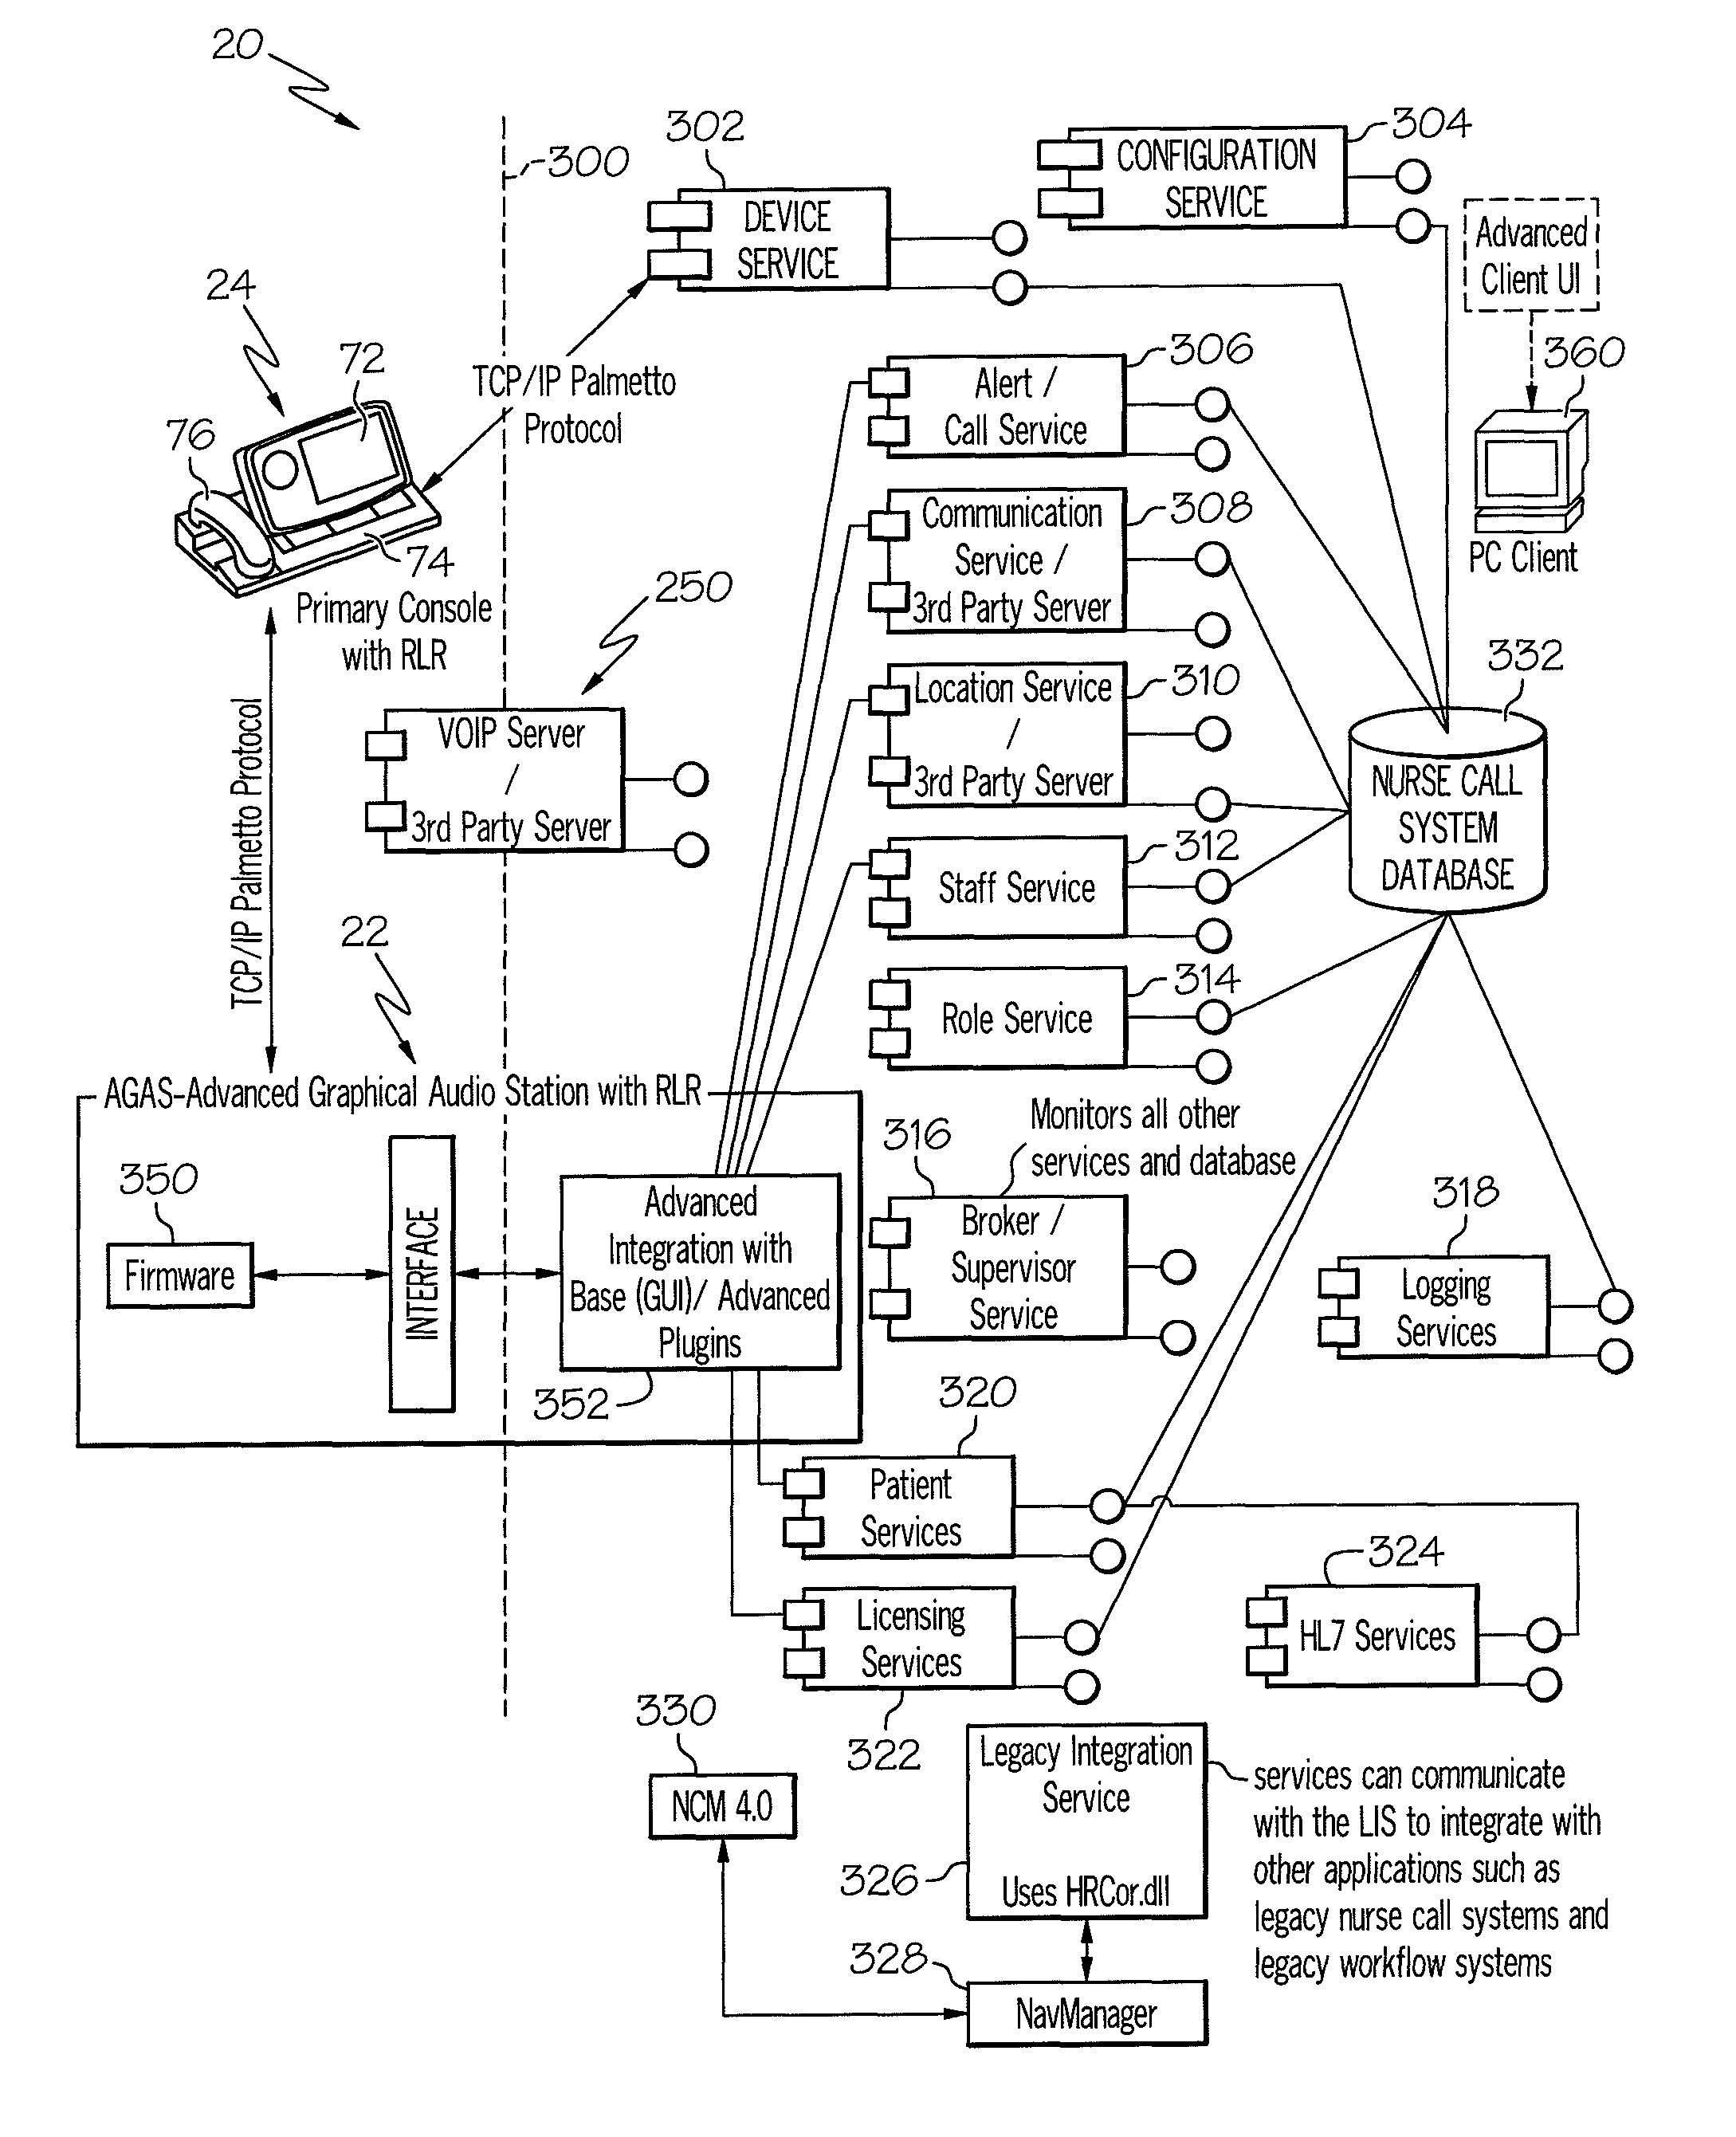 Emergency Stop On Wiring Diagram additionally Energy Speaker Wiring Diagram in addition Dukane Inter Speaker Wiring Diagram besides Florence Inter  System Wiring Diagram as well Wireless Cctv Systems. on wiring diagram for nurse call system